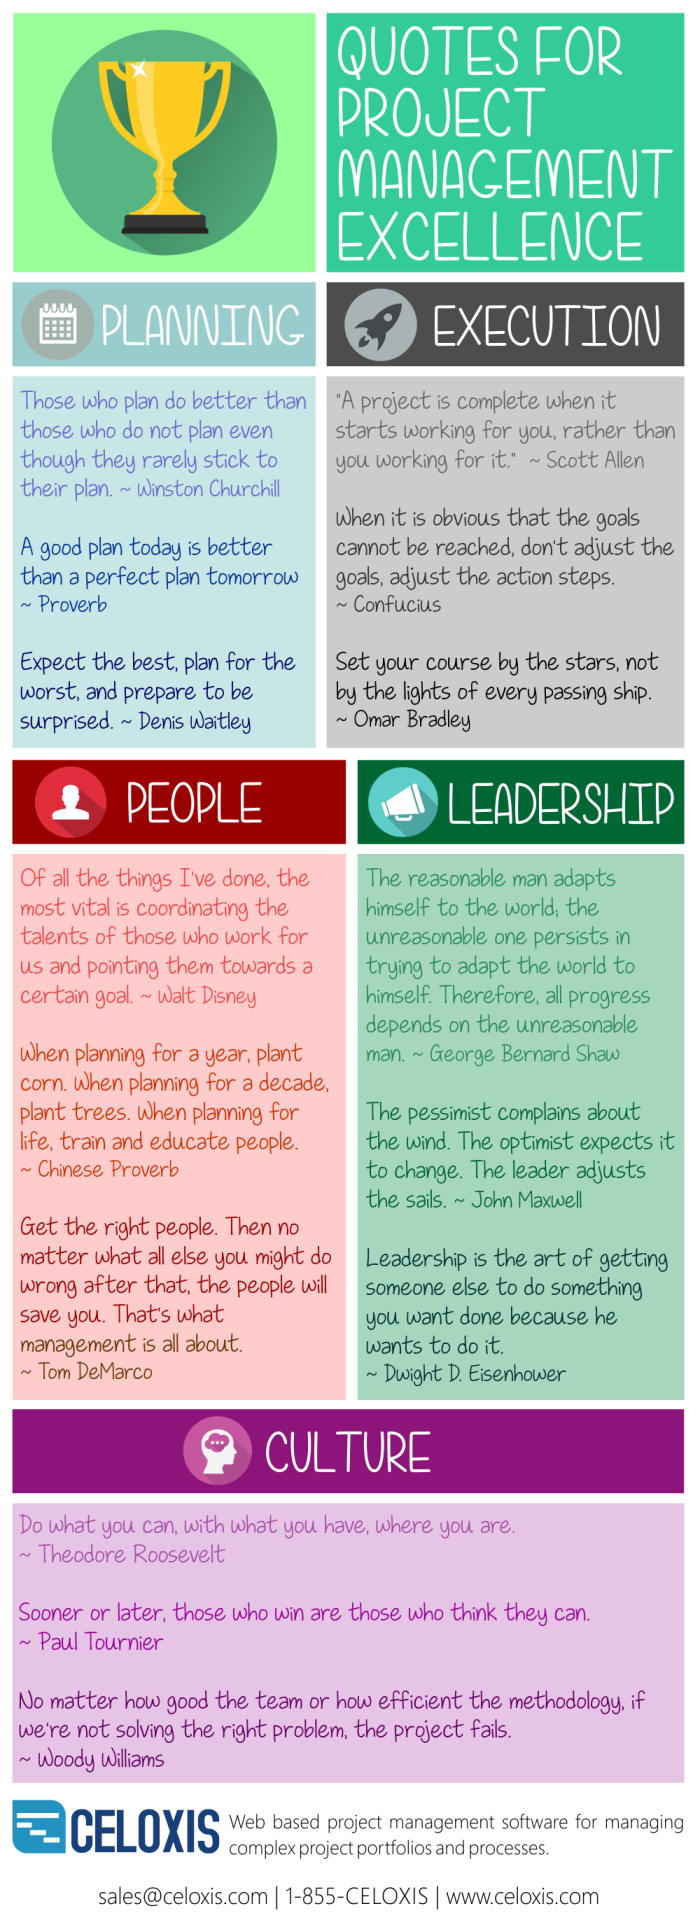 INFOGRAPHIC: Quotes for Project Management Excellence